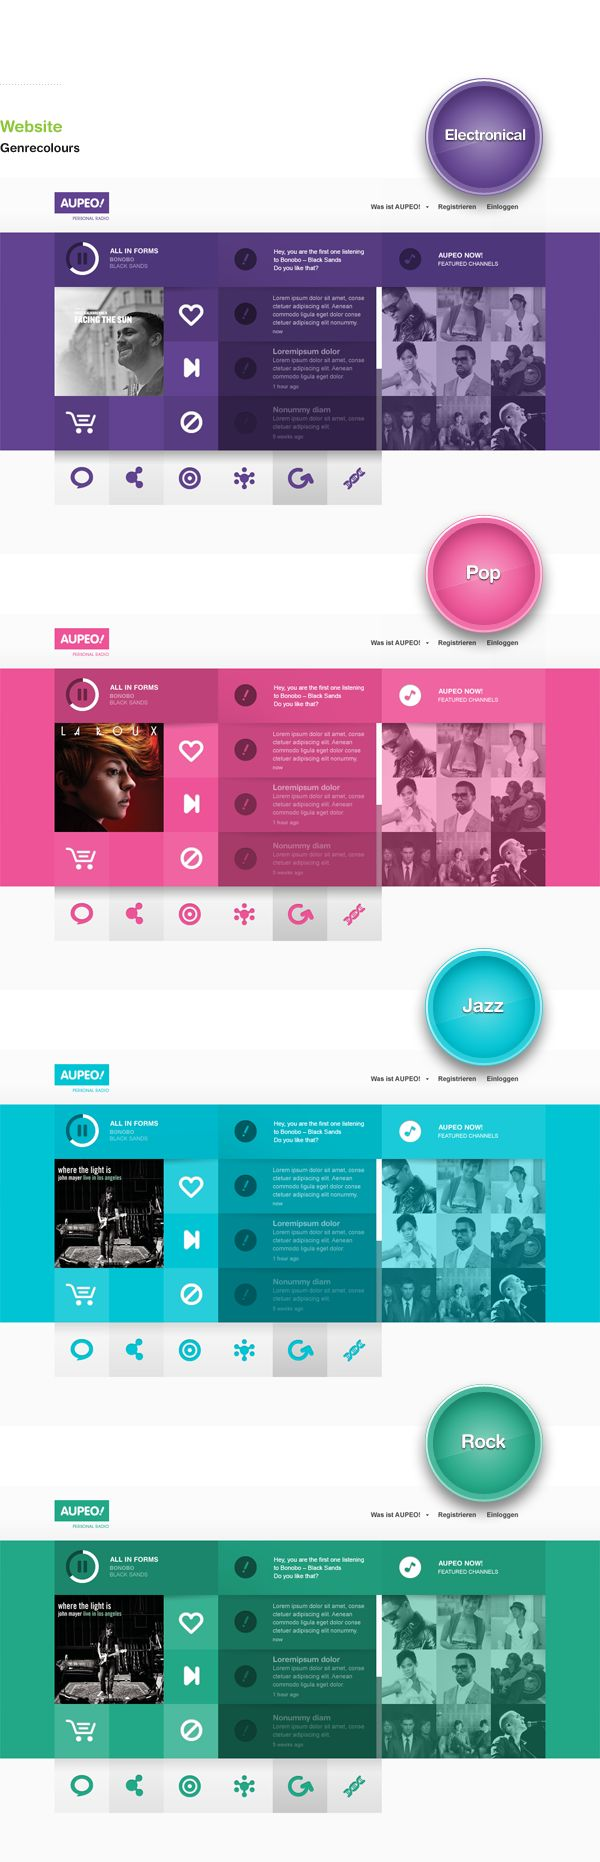 AUPEO! Personal Radio: by Rene Bieder: Branding, Interaction Design #web #website